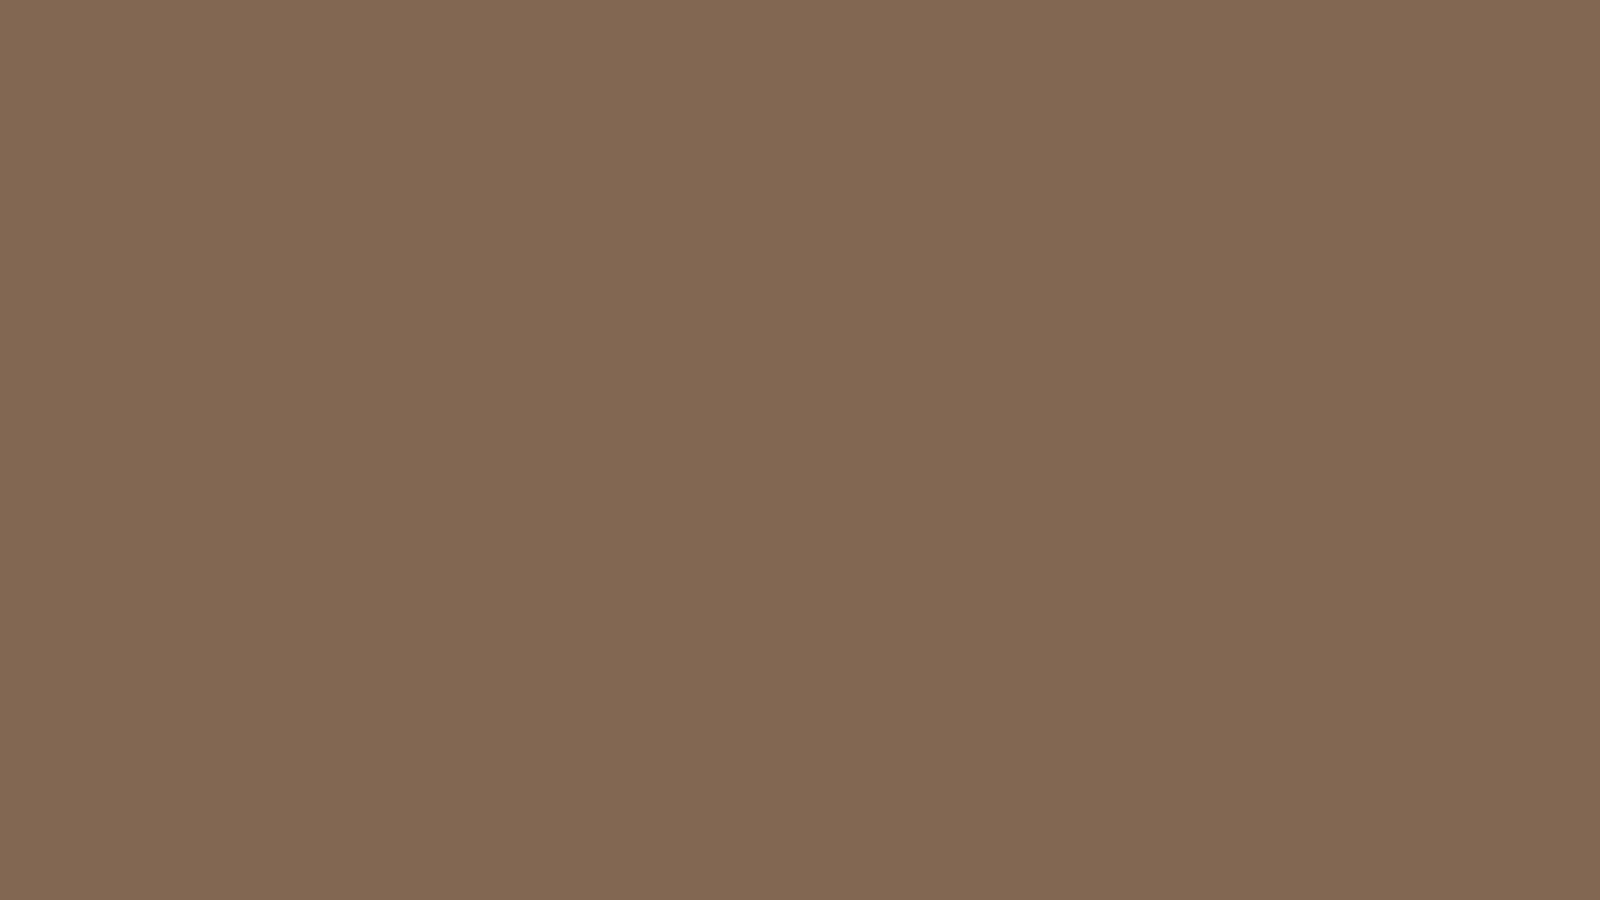 1600x900 Pastel Brown Solid Color Background